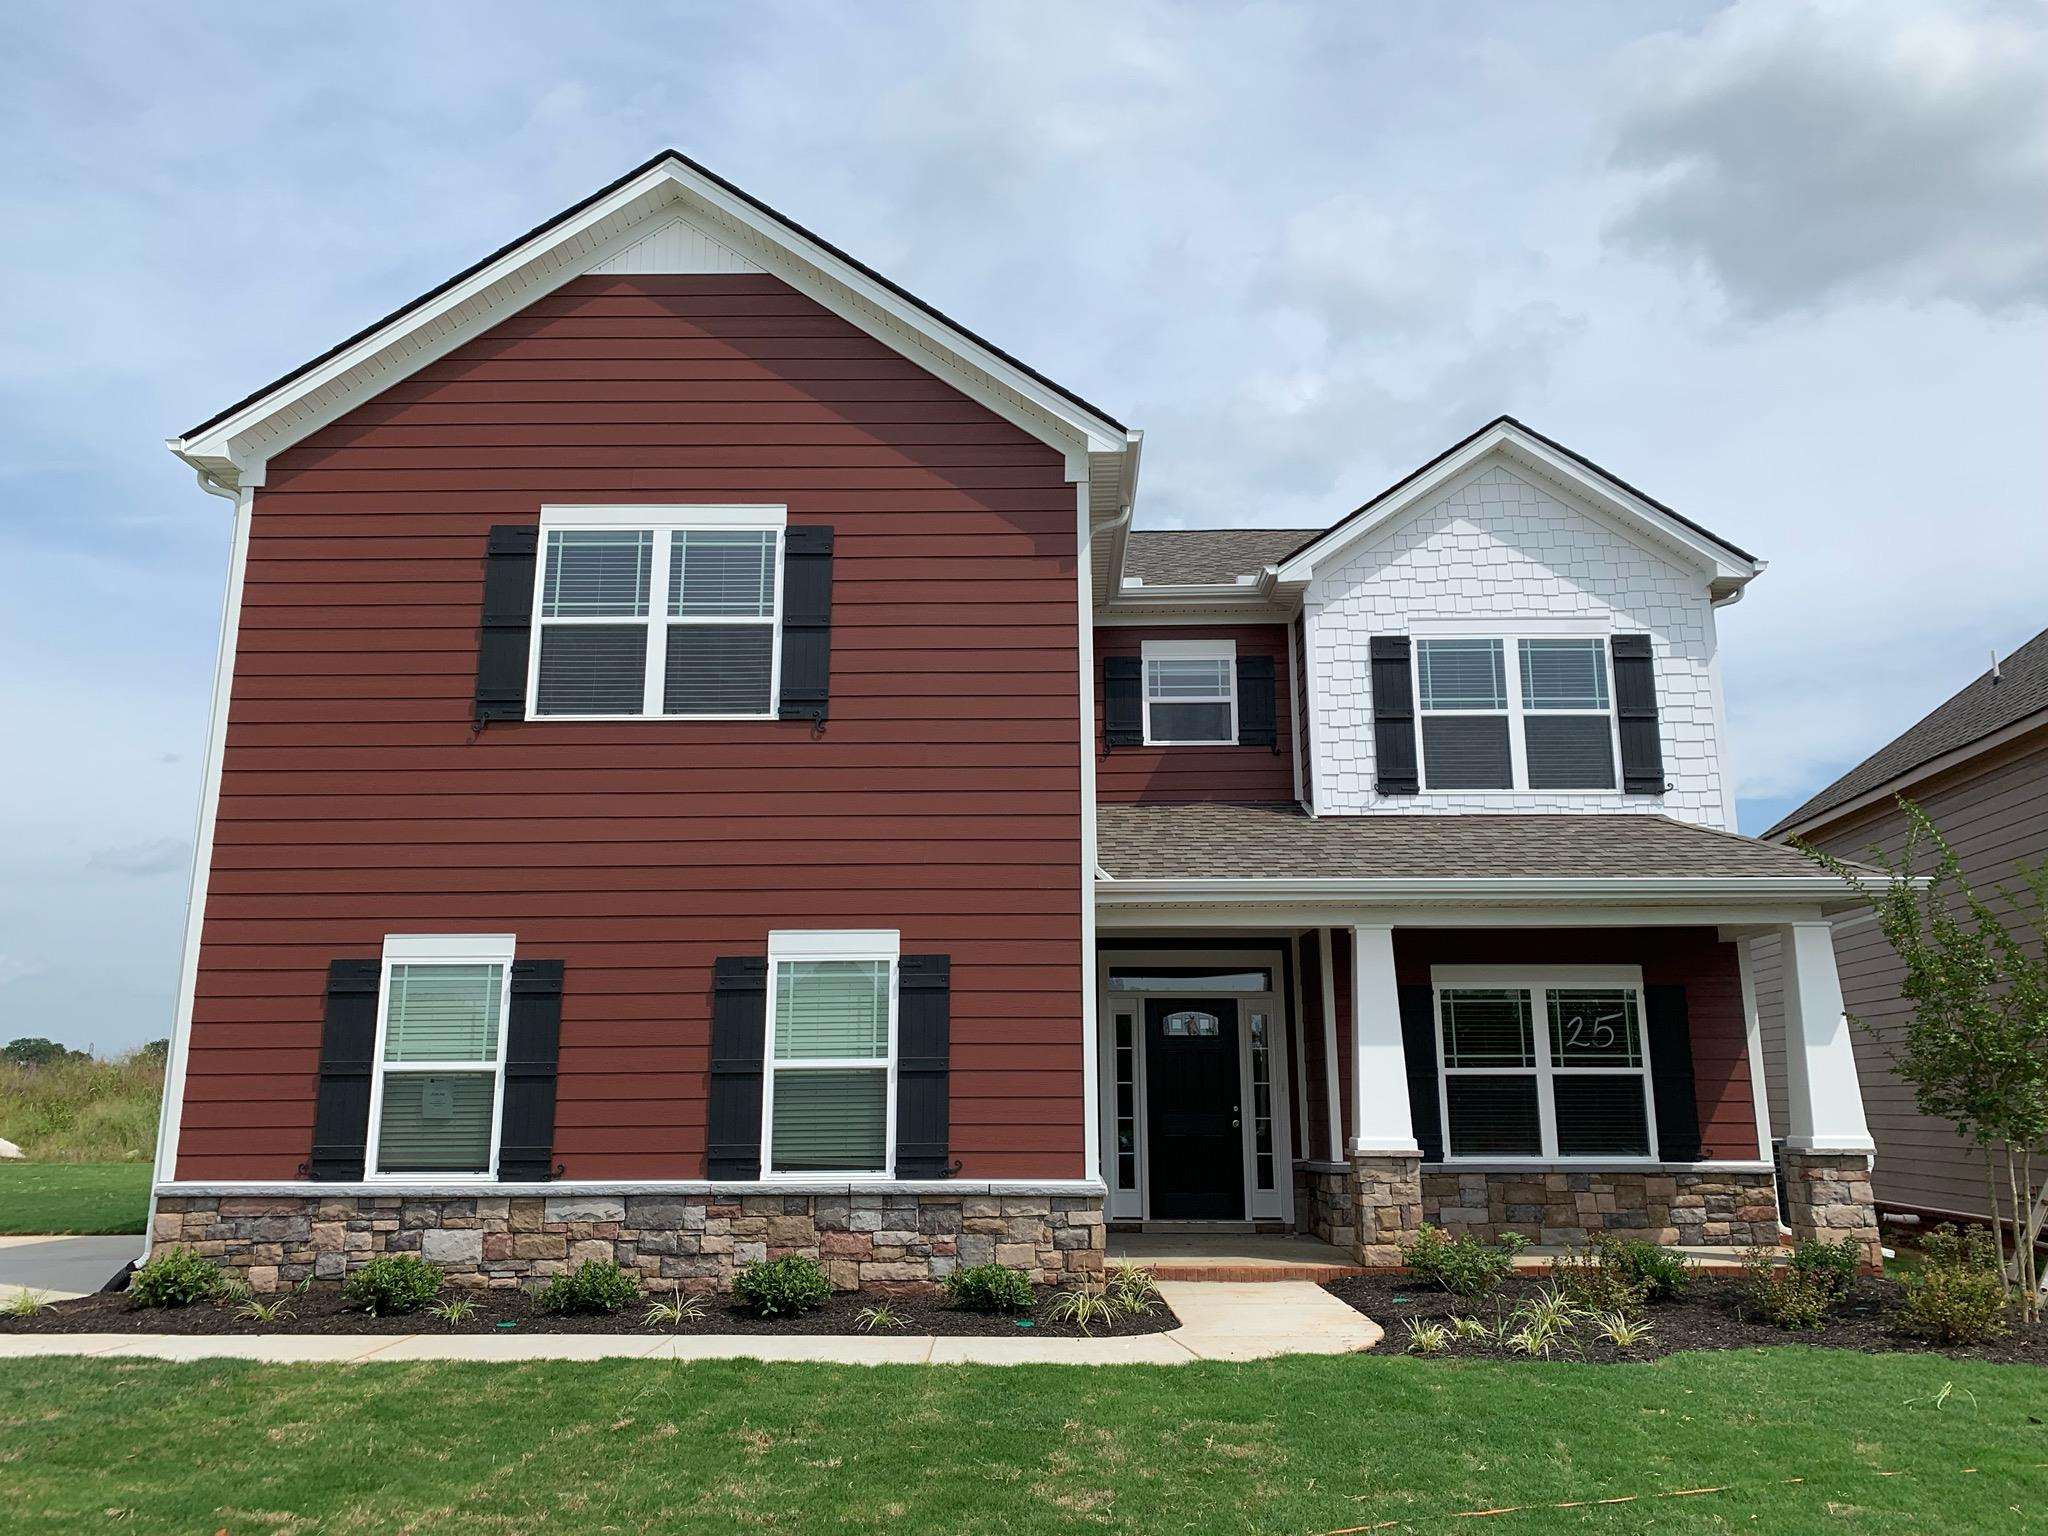 3403 Pear Blossom Way / Lt25, Murfreesboro, TN 37127 - Murfreesboro, TN real estate listing